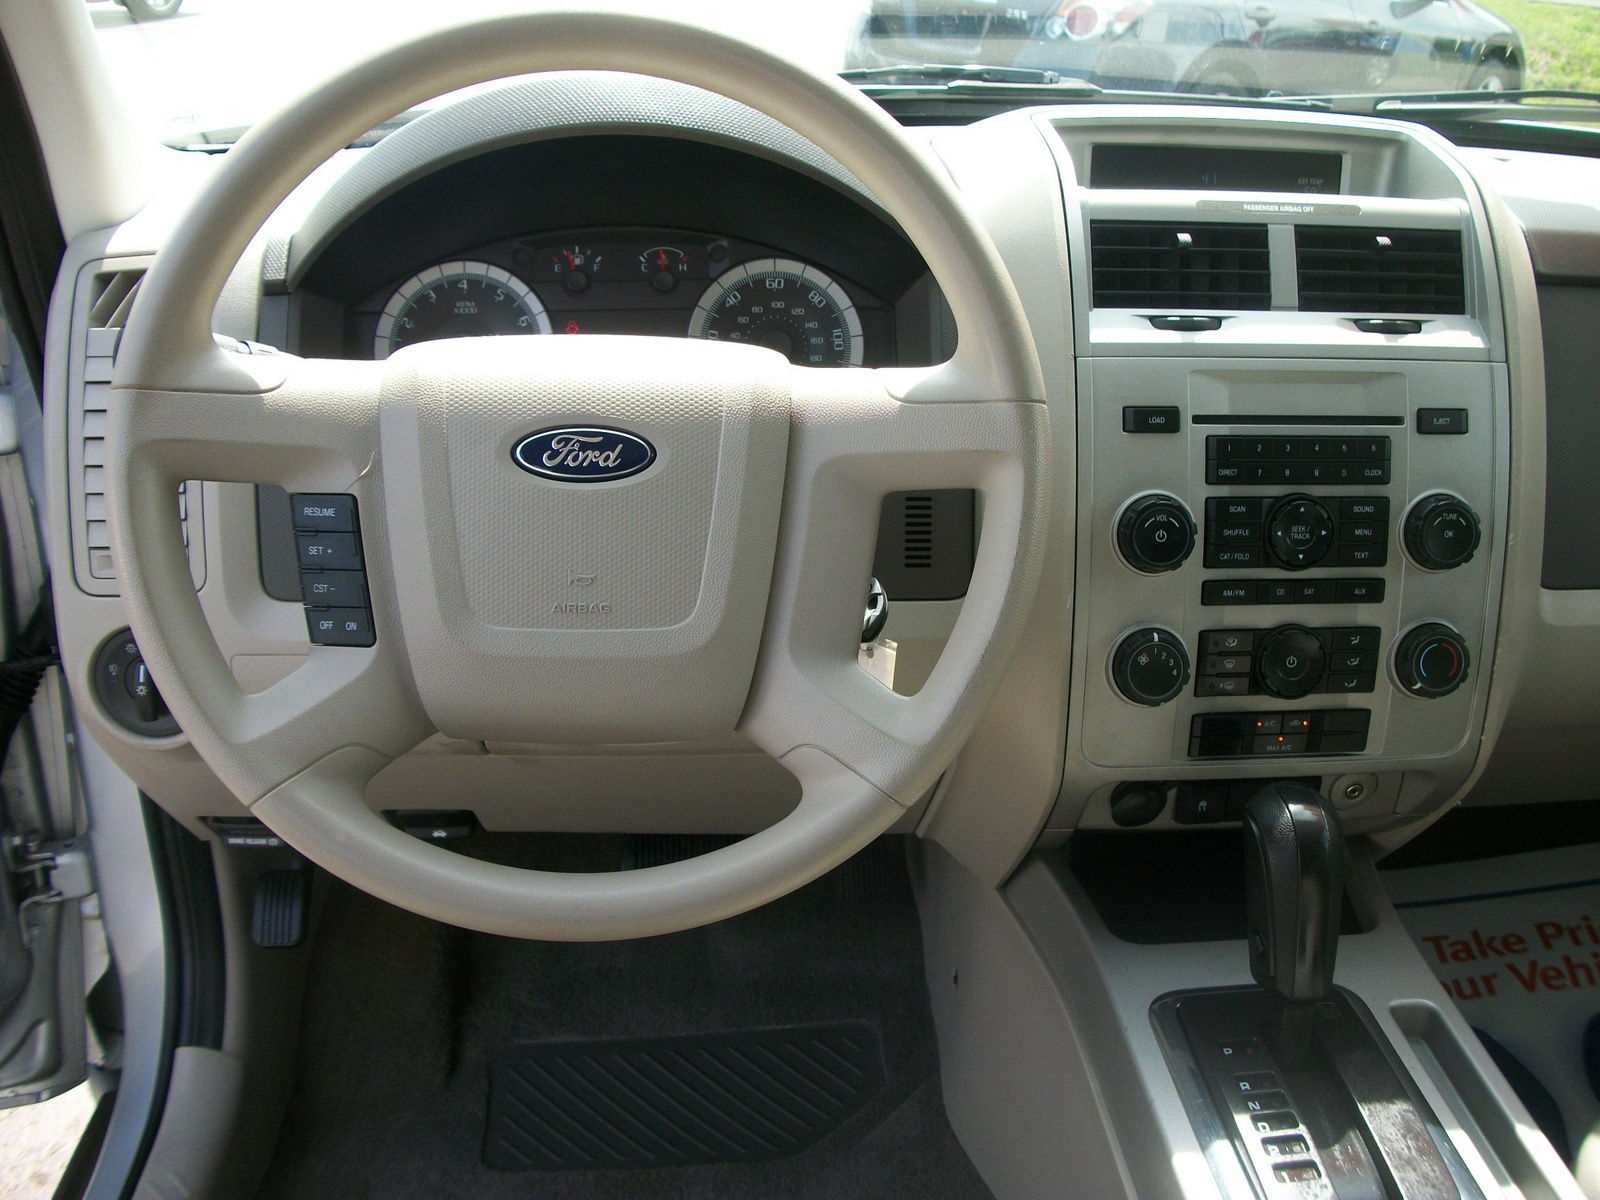 2008 Ford Escape Specifications New Cars Used Cars Car Reviews Html Autos Weblog